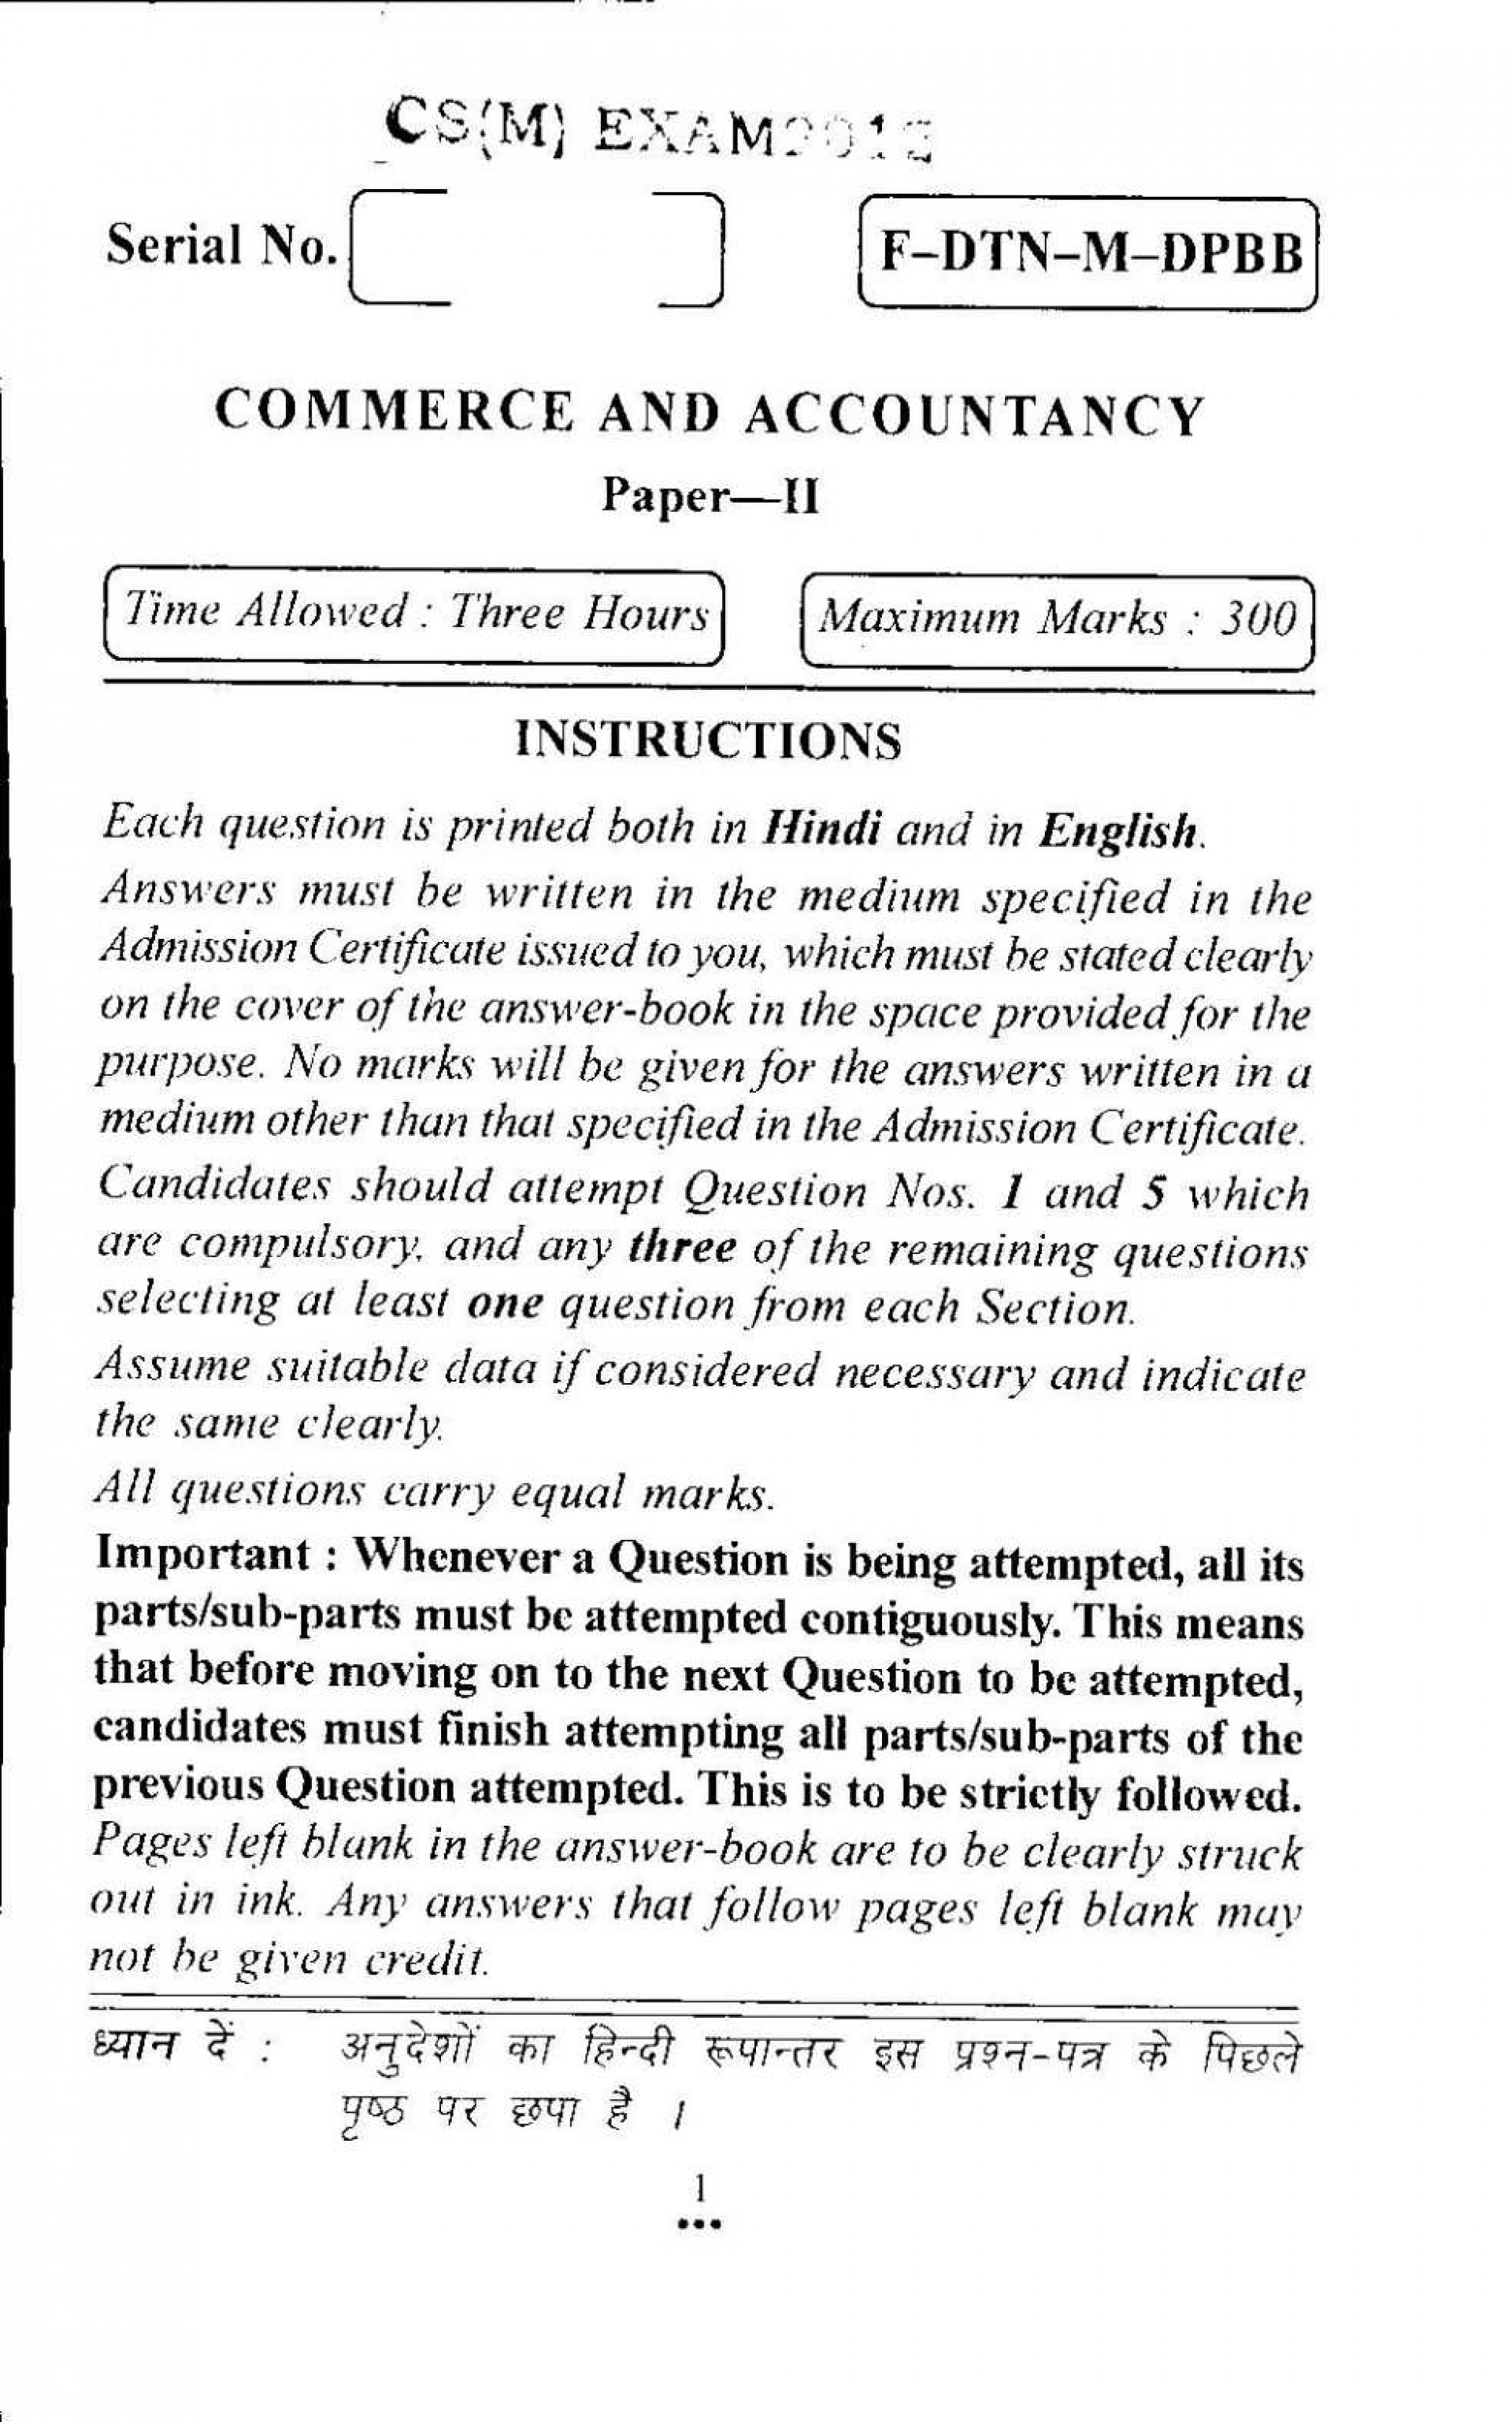 009 Essay Example Civil Services Examination Commerce And Accountancy Paper Ii Previous Years Que Racism Fantastic Argumentative Topics Examples In Sports 1920